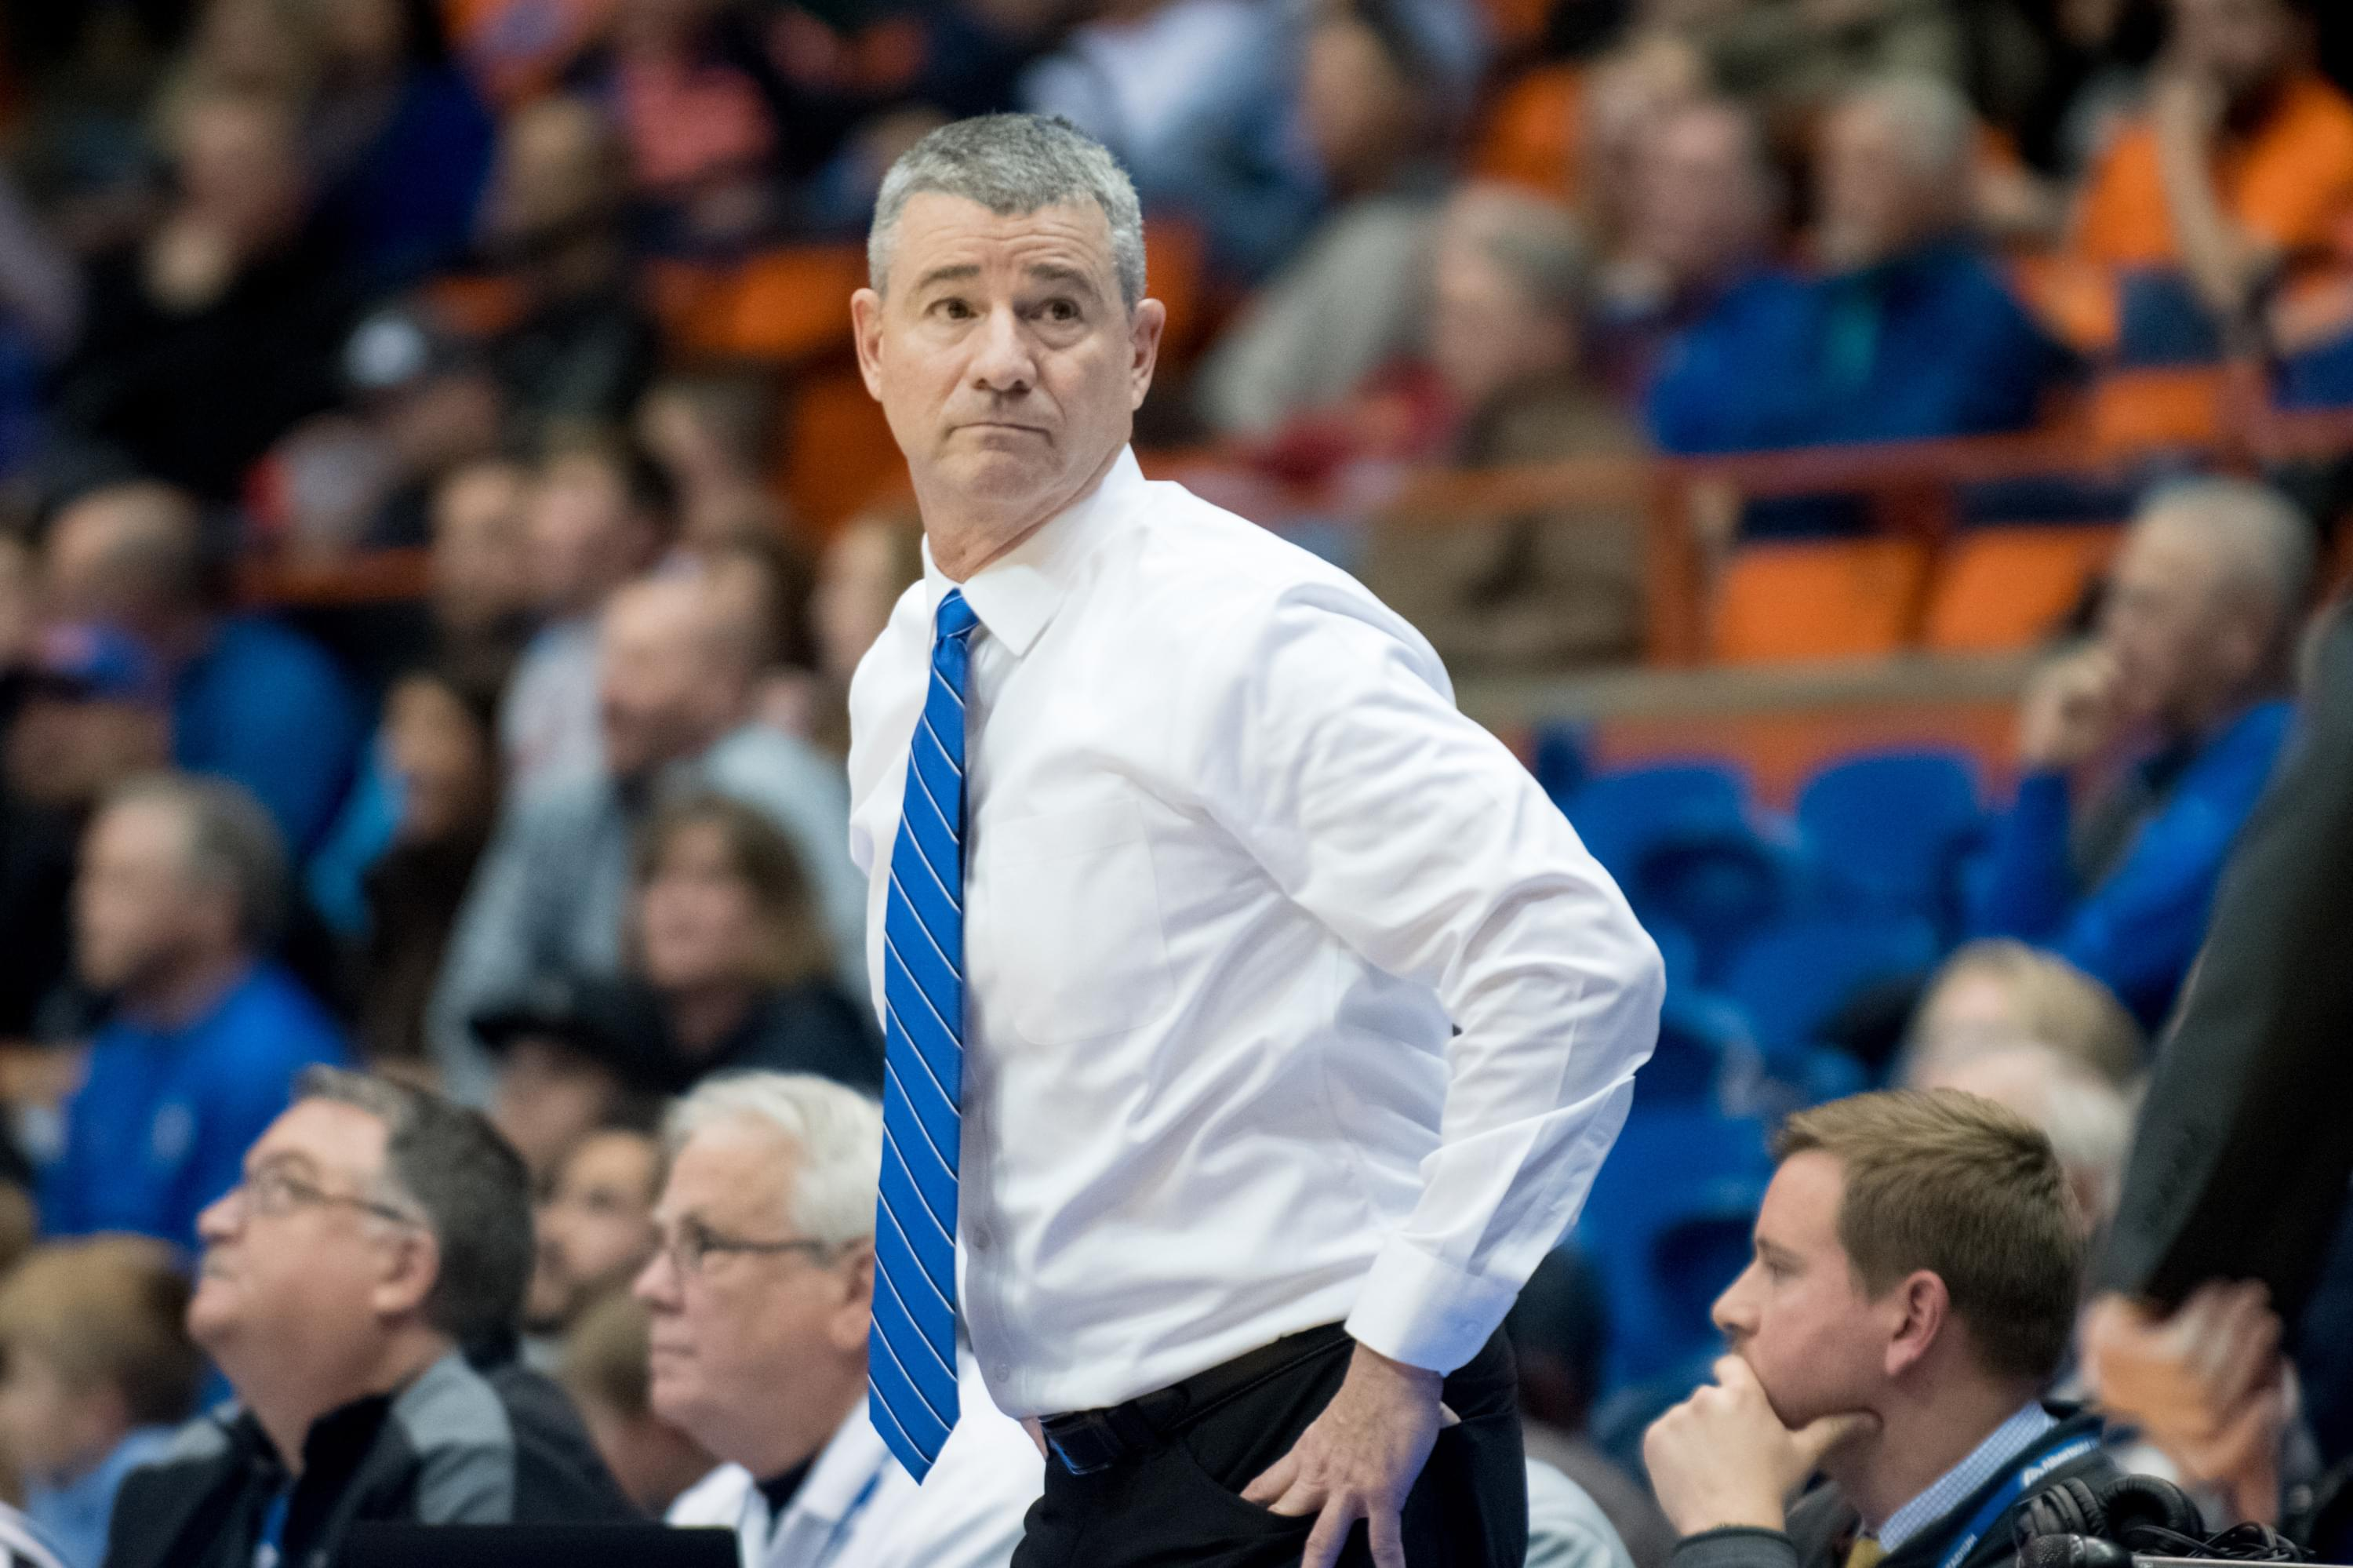 Boise State Basketball: Do You Believe In Miracles?